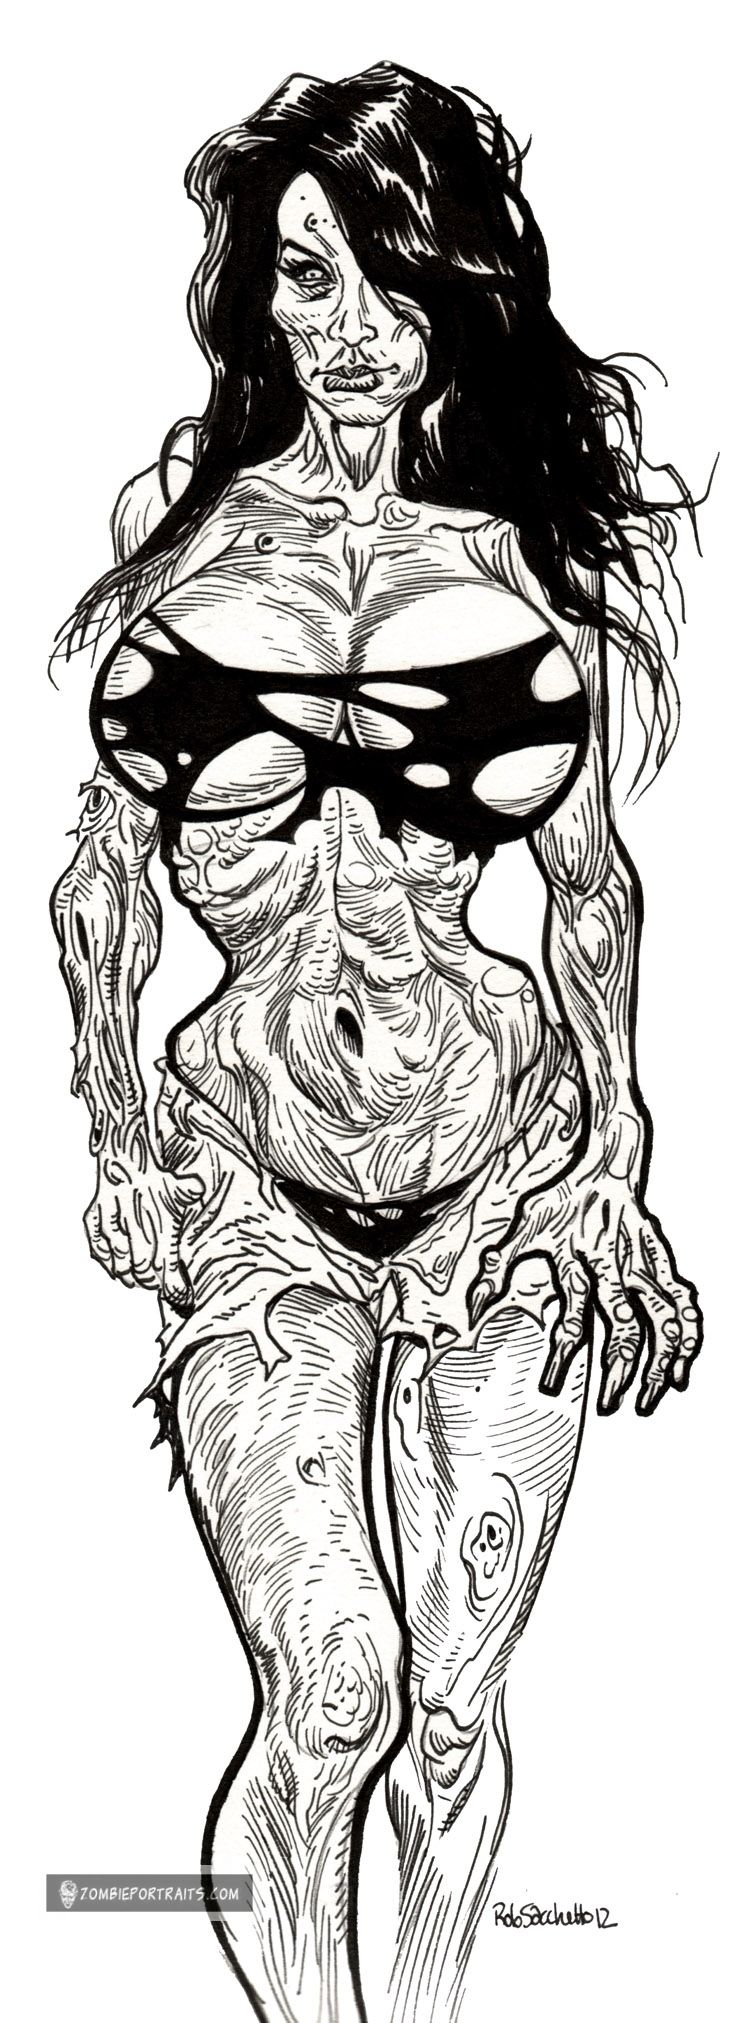 Zombie Pinup Diva 4 Brunette Brain Eater Zombie Art by Rob